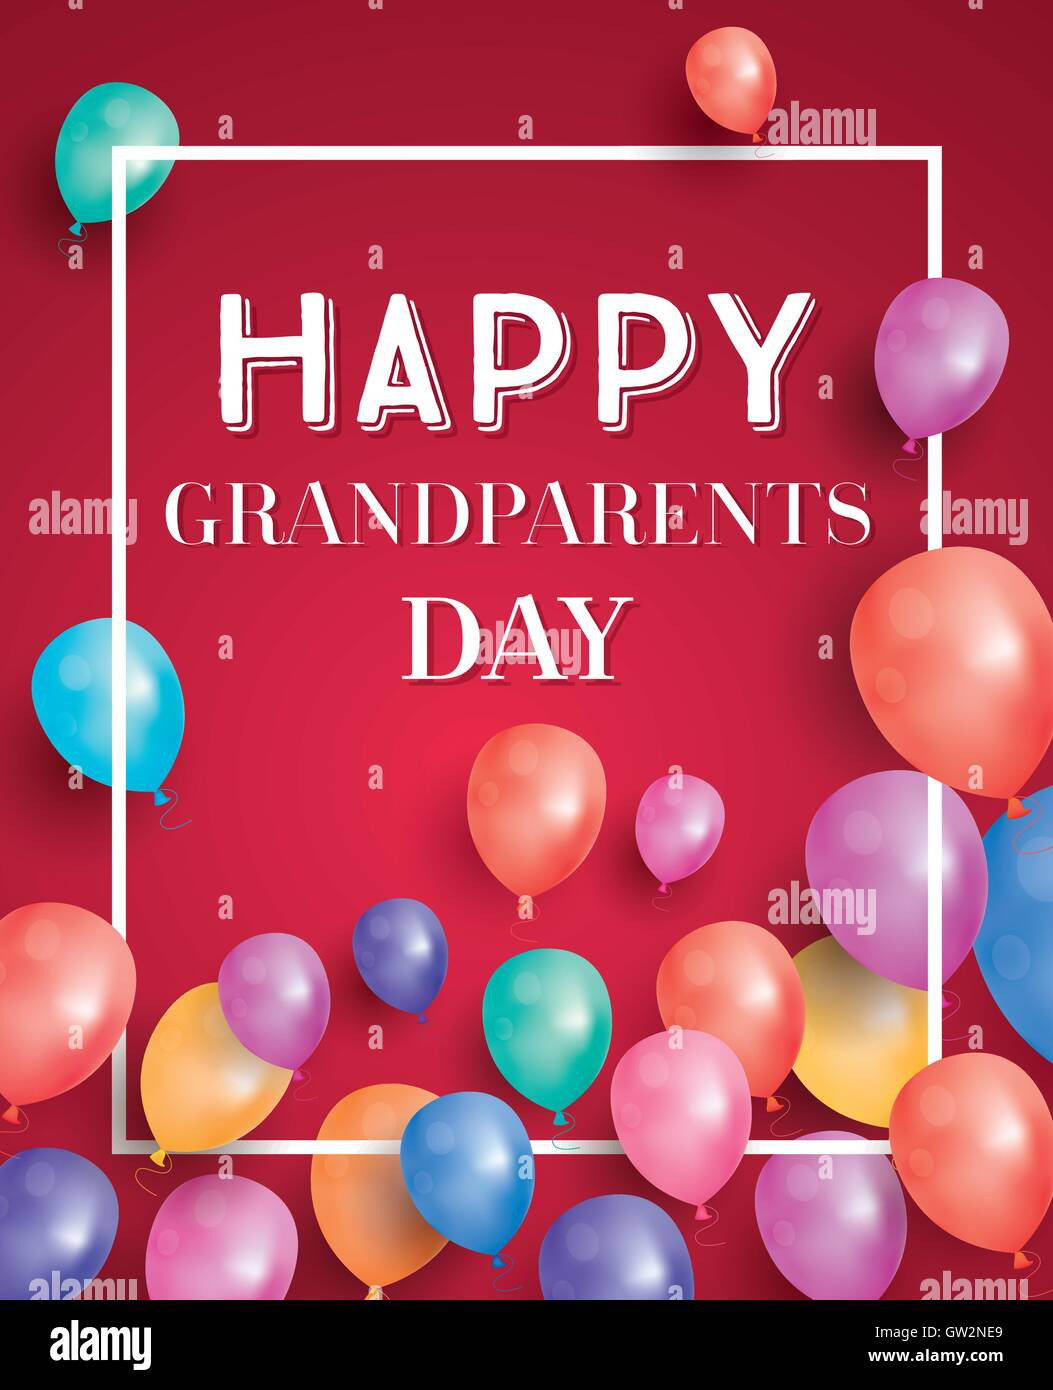 Happy Grandparents Day Vector Illustration Stockfotos & Happy ...